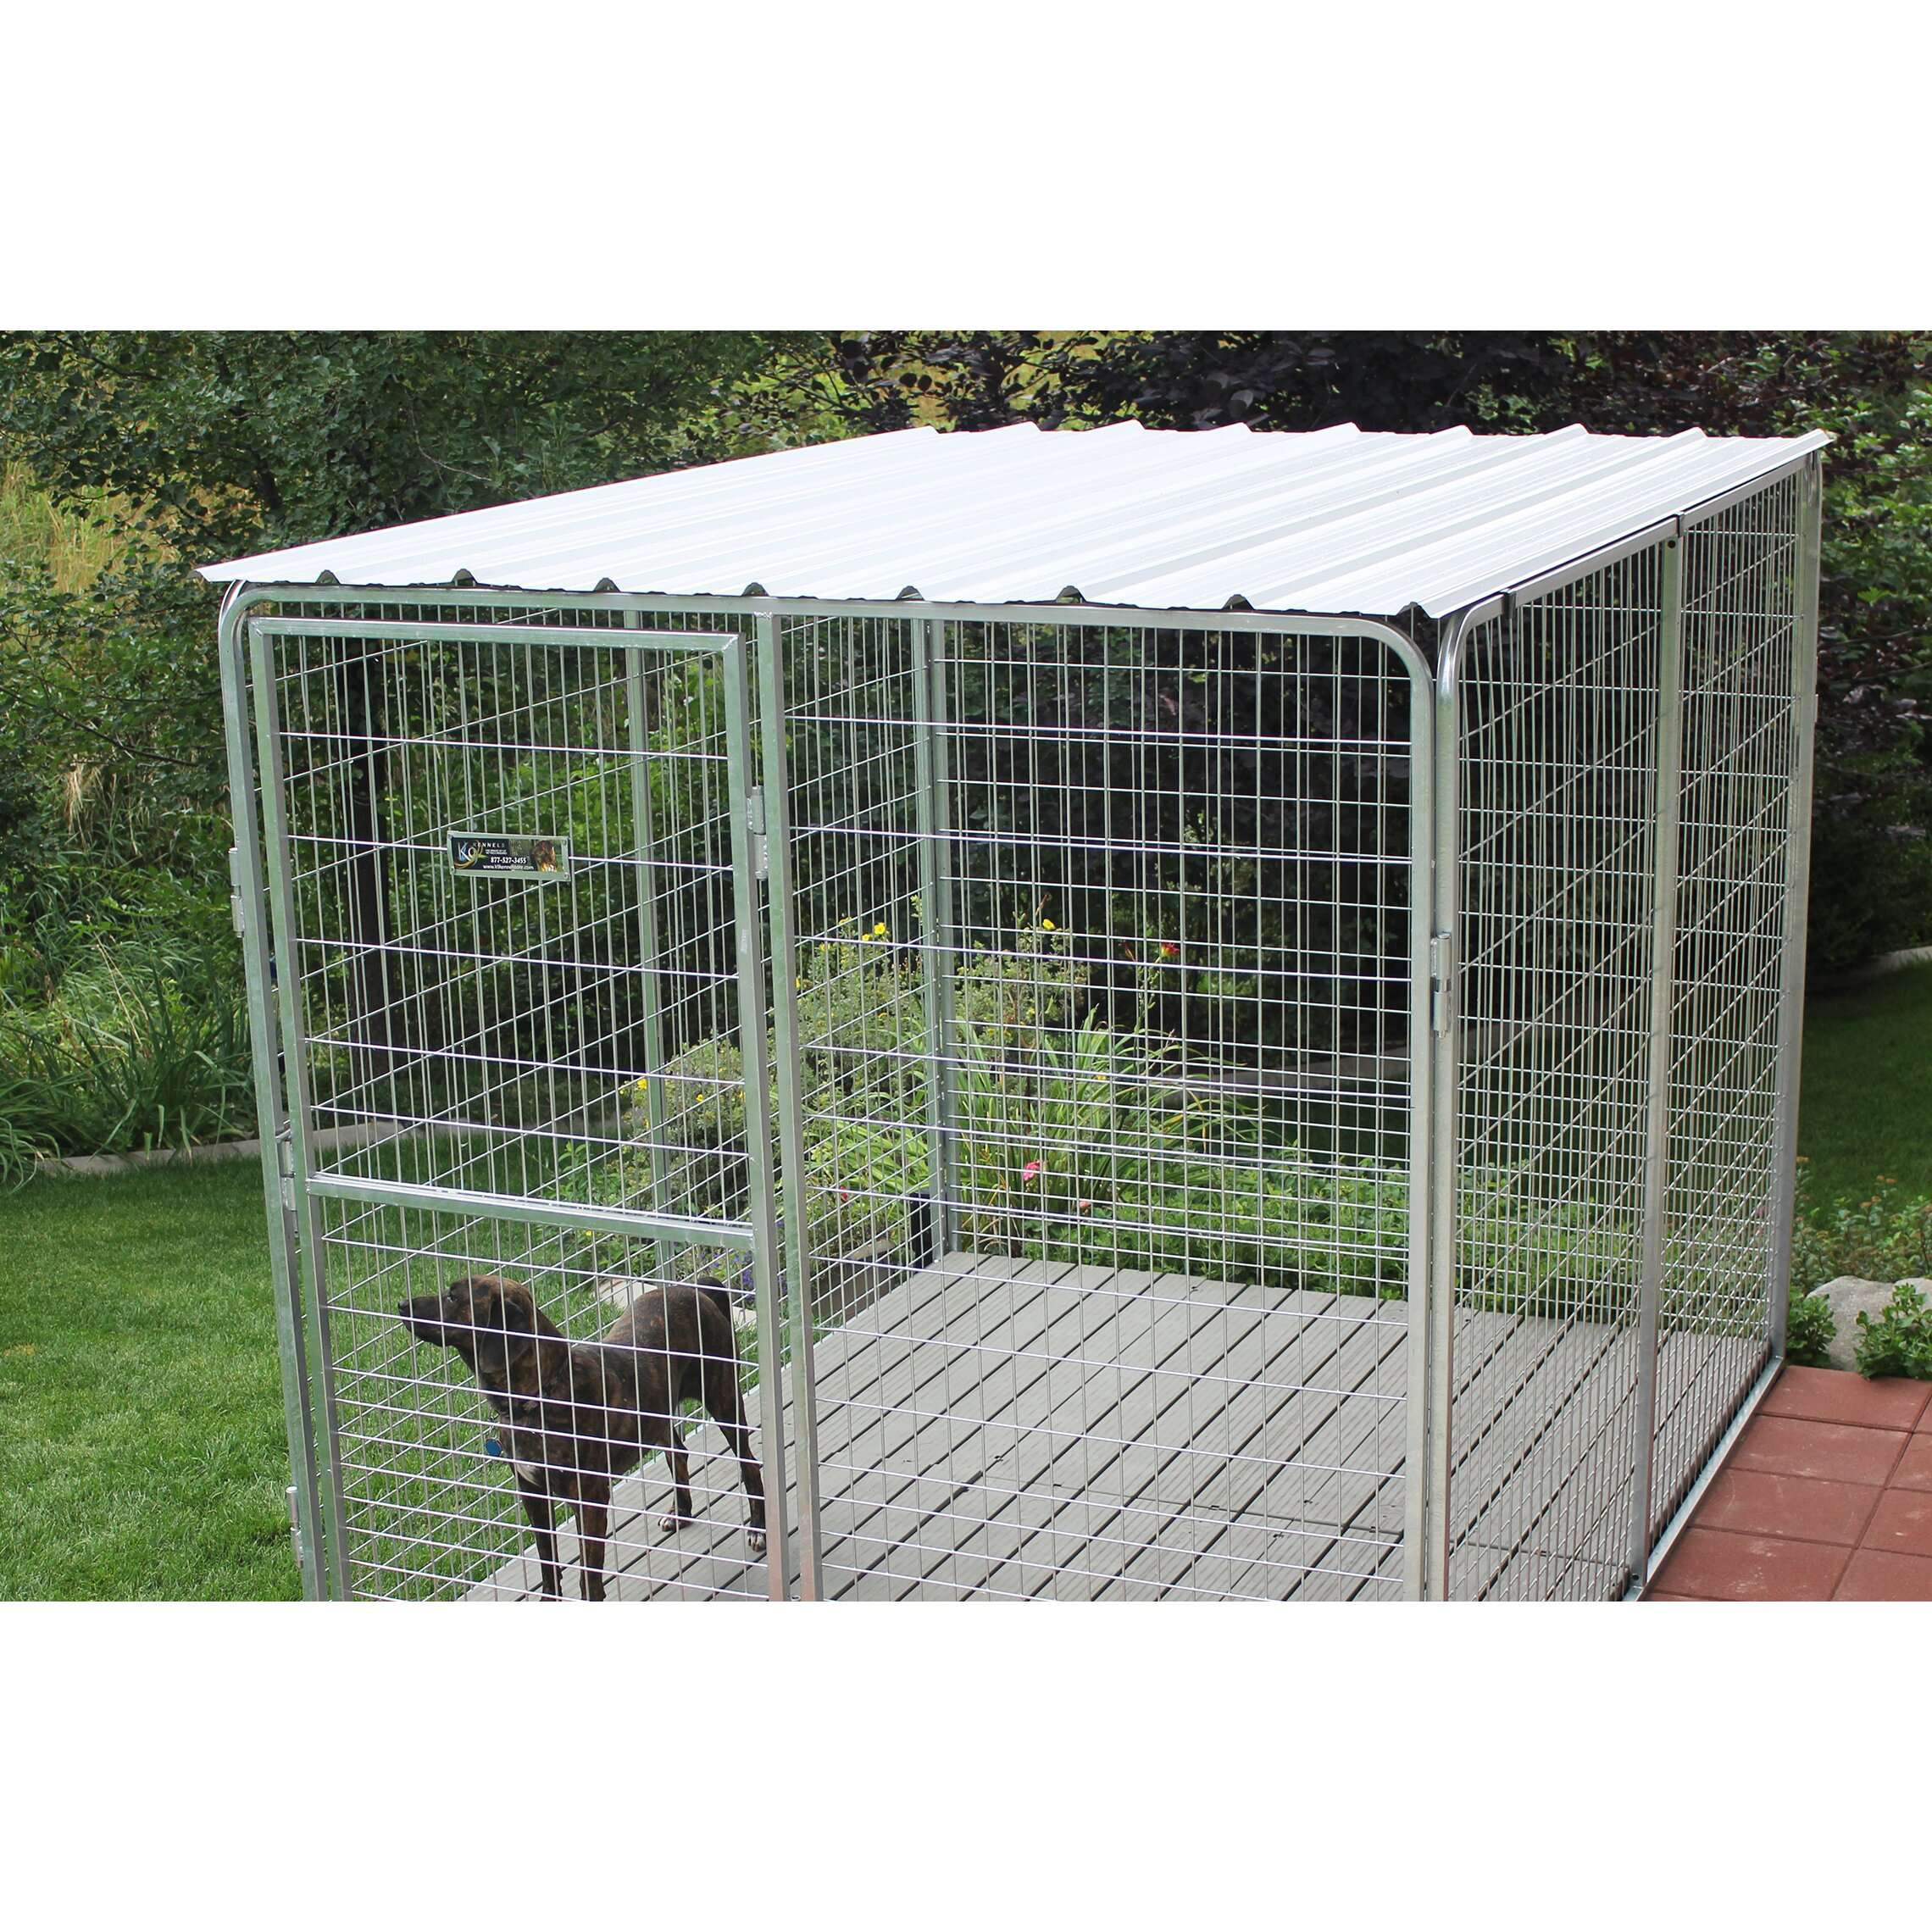 K9 Kennel Basic Corrugated Yard Kennel Metal Top Amp Reviews